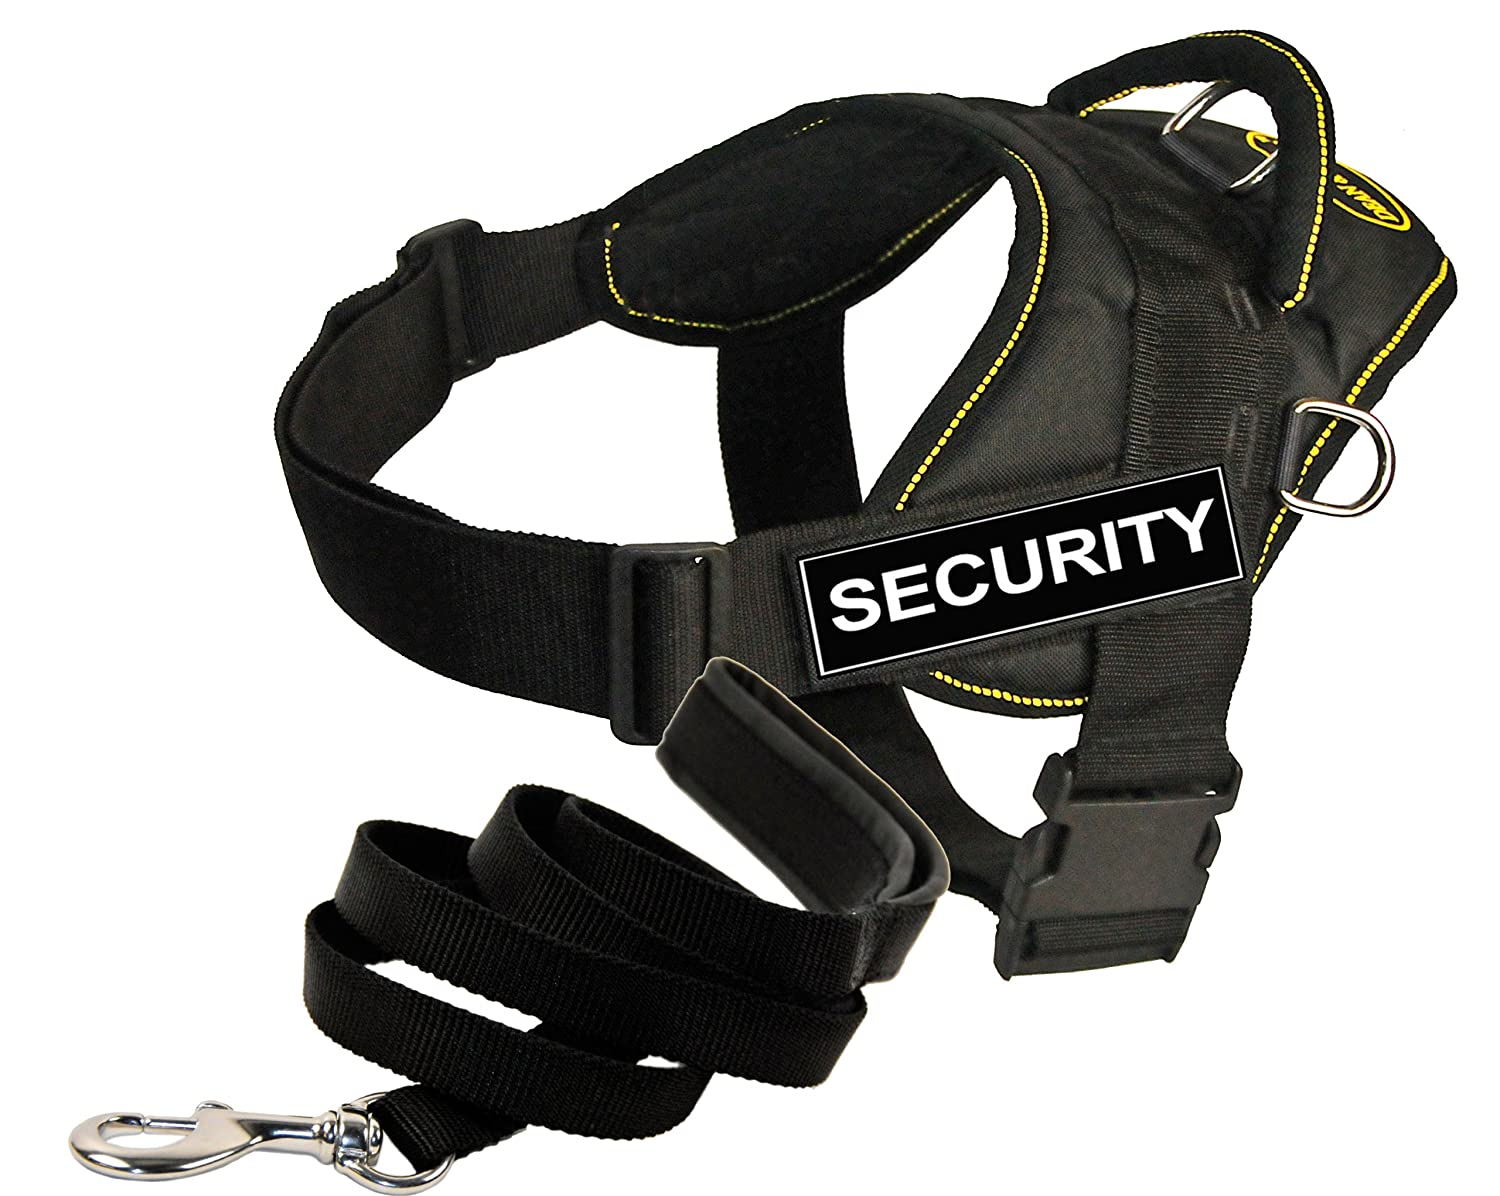 Dean and Tyler Bundle One DT Fun Works  Harness, Security, Yellow Trim, X-Large (34  47 ) + One Padded Puppy  Leash, 6 FT Stainless Snap Black